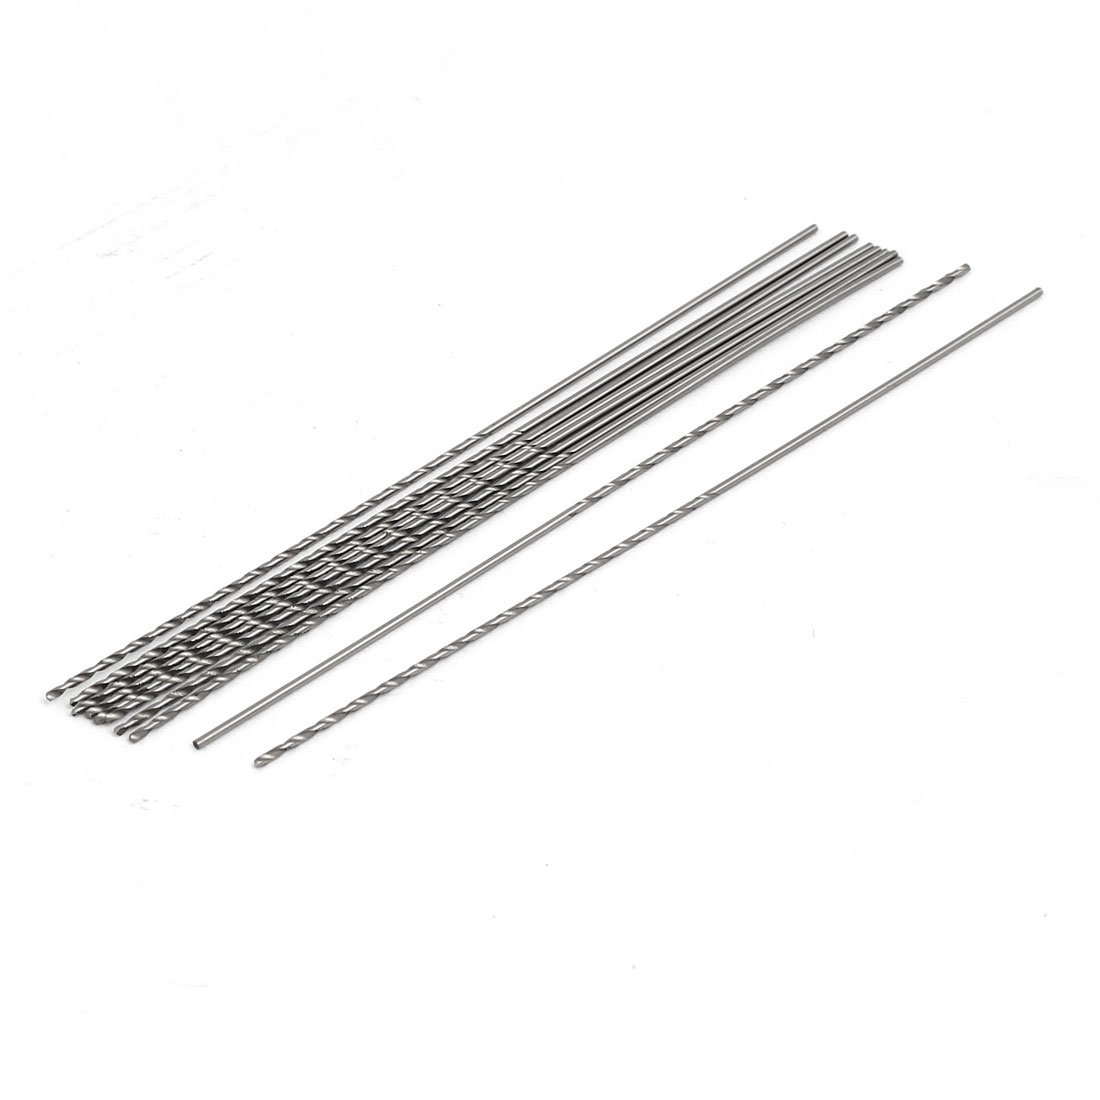 wholesale cheap and high quality uxcell 0.9mm Dia 100mm Length HSS ...